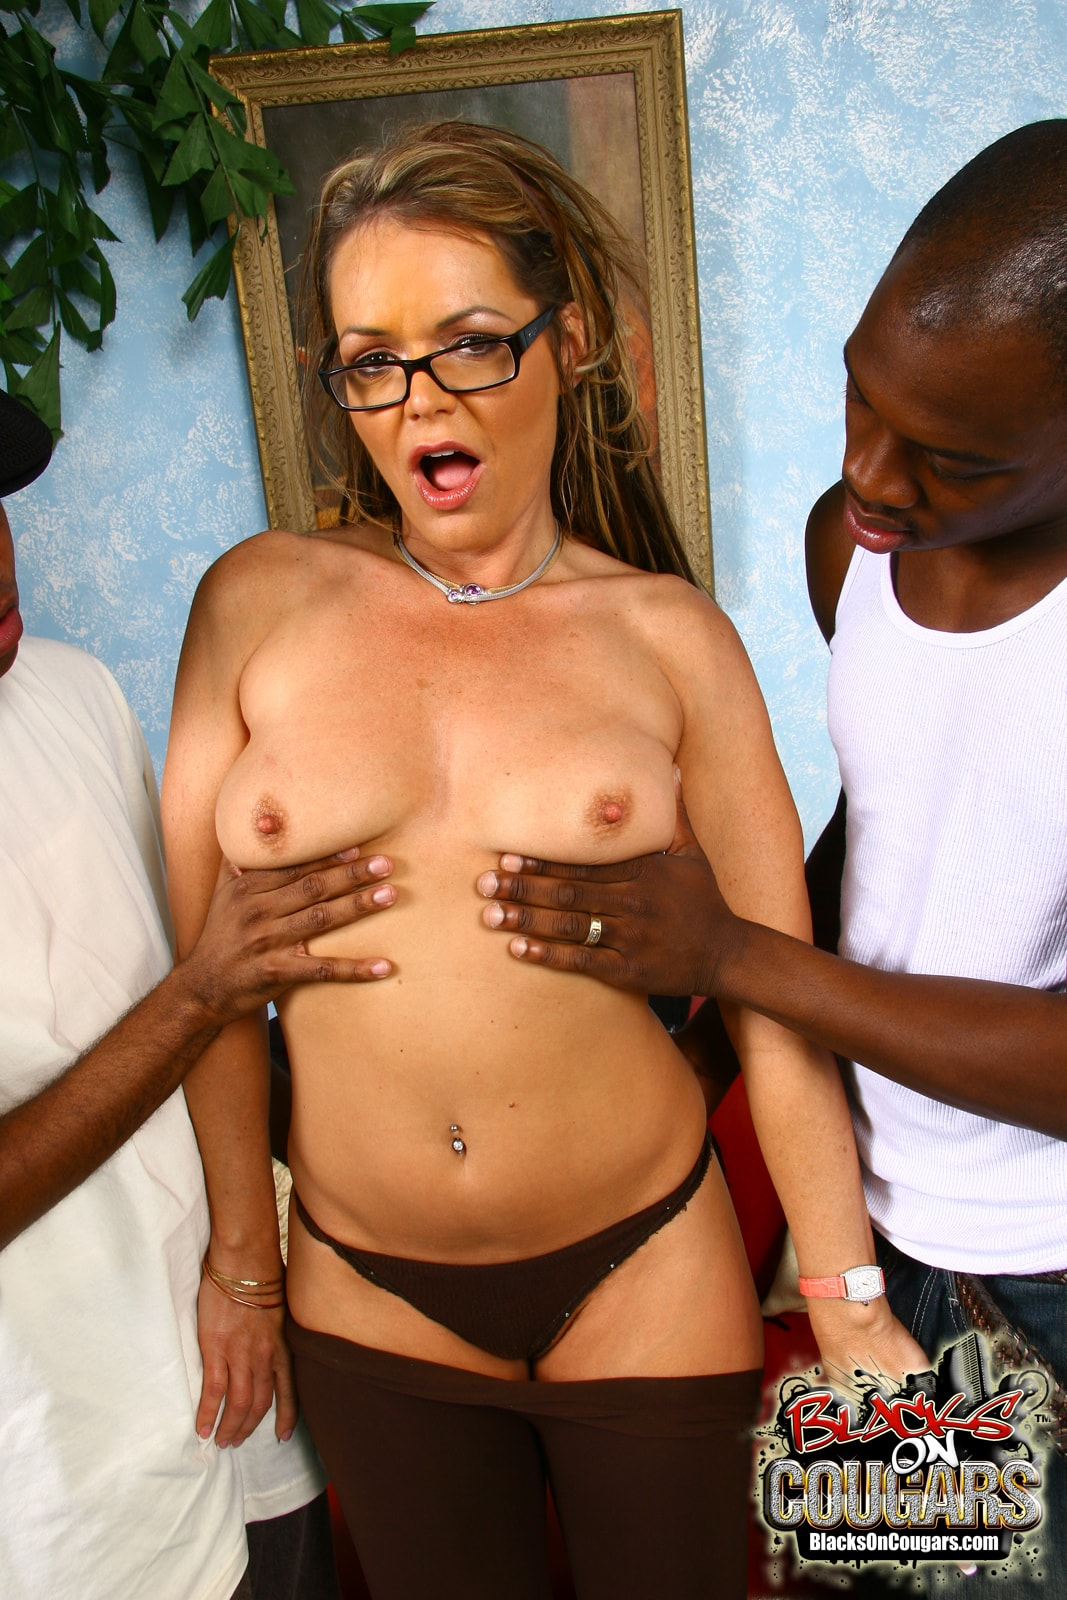 Dogfart '- Blacks On Cougars' starring Kelly Leigh (Photo 13)